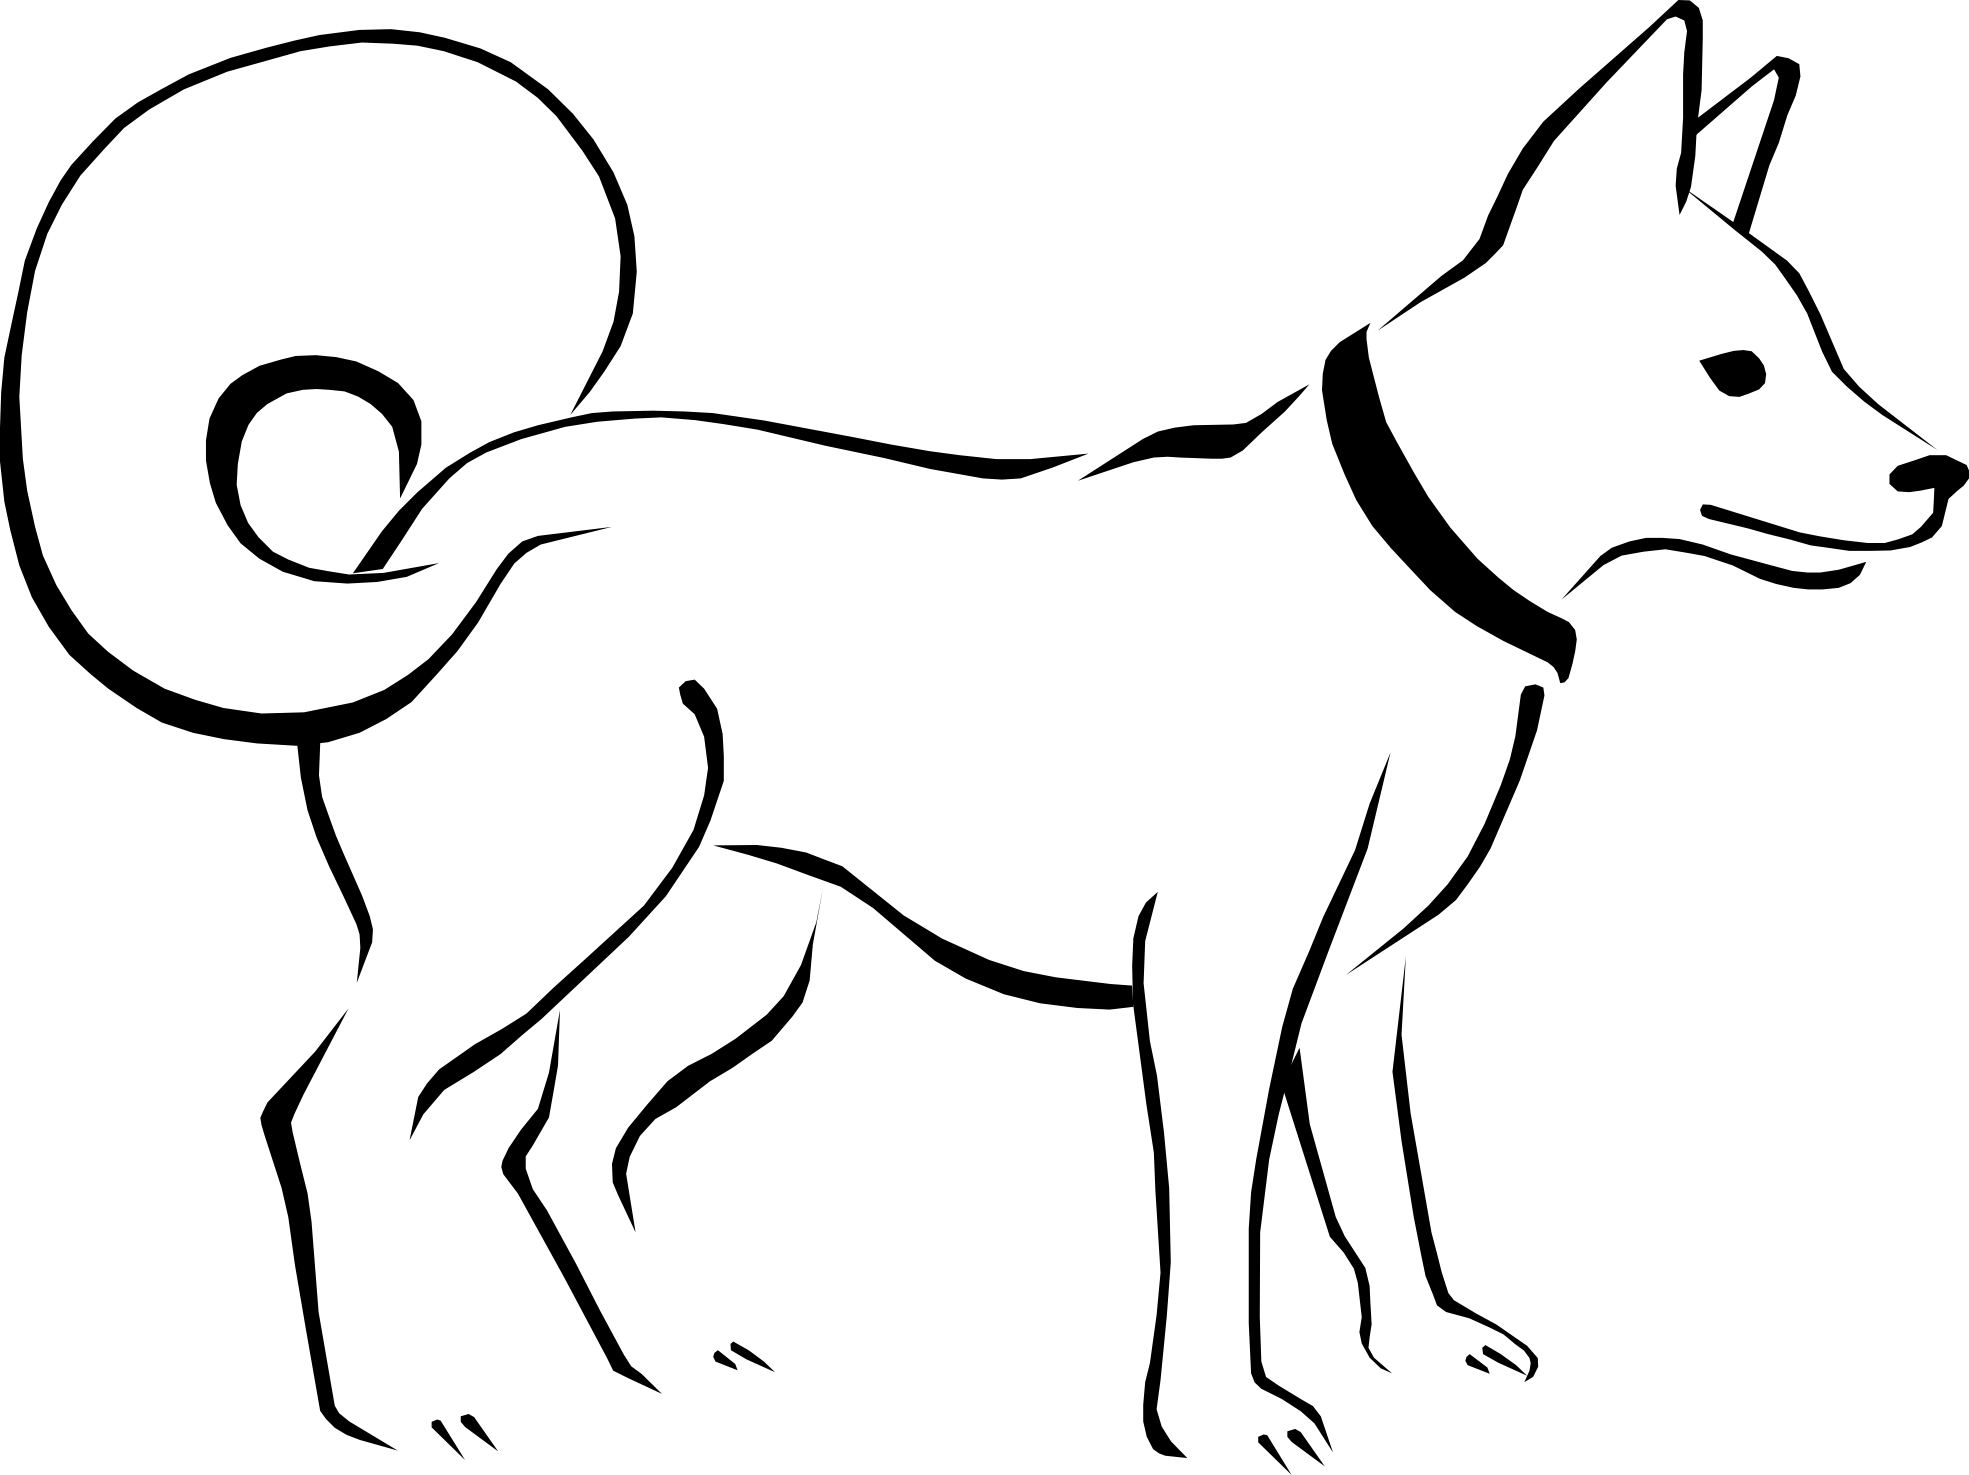 Dogs pretty inspiration ideas. Dog bowl clipart black and white